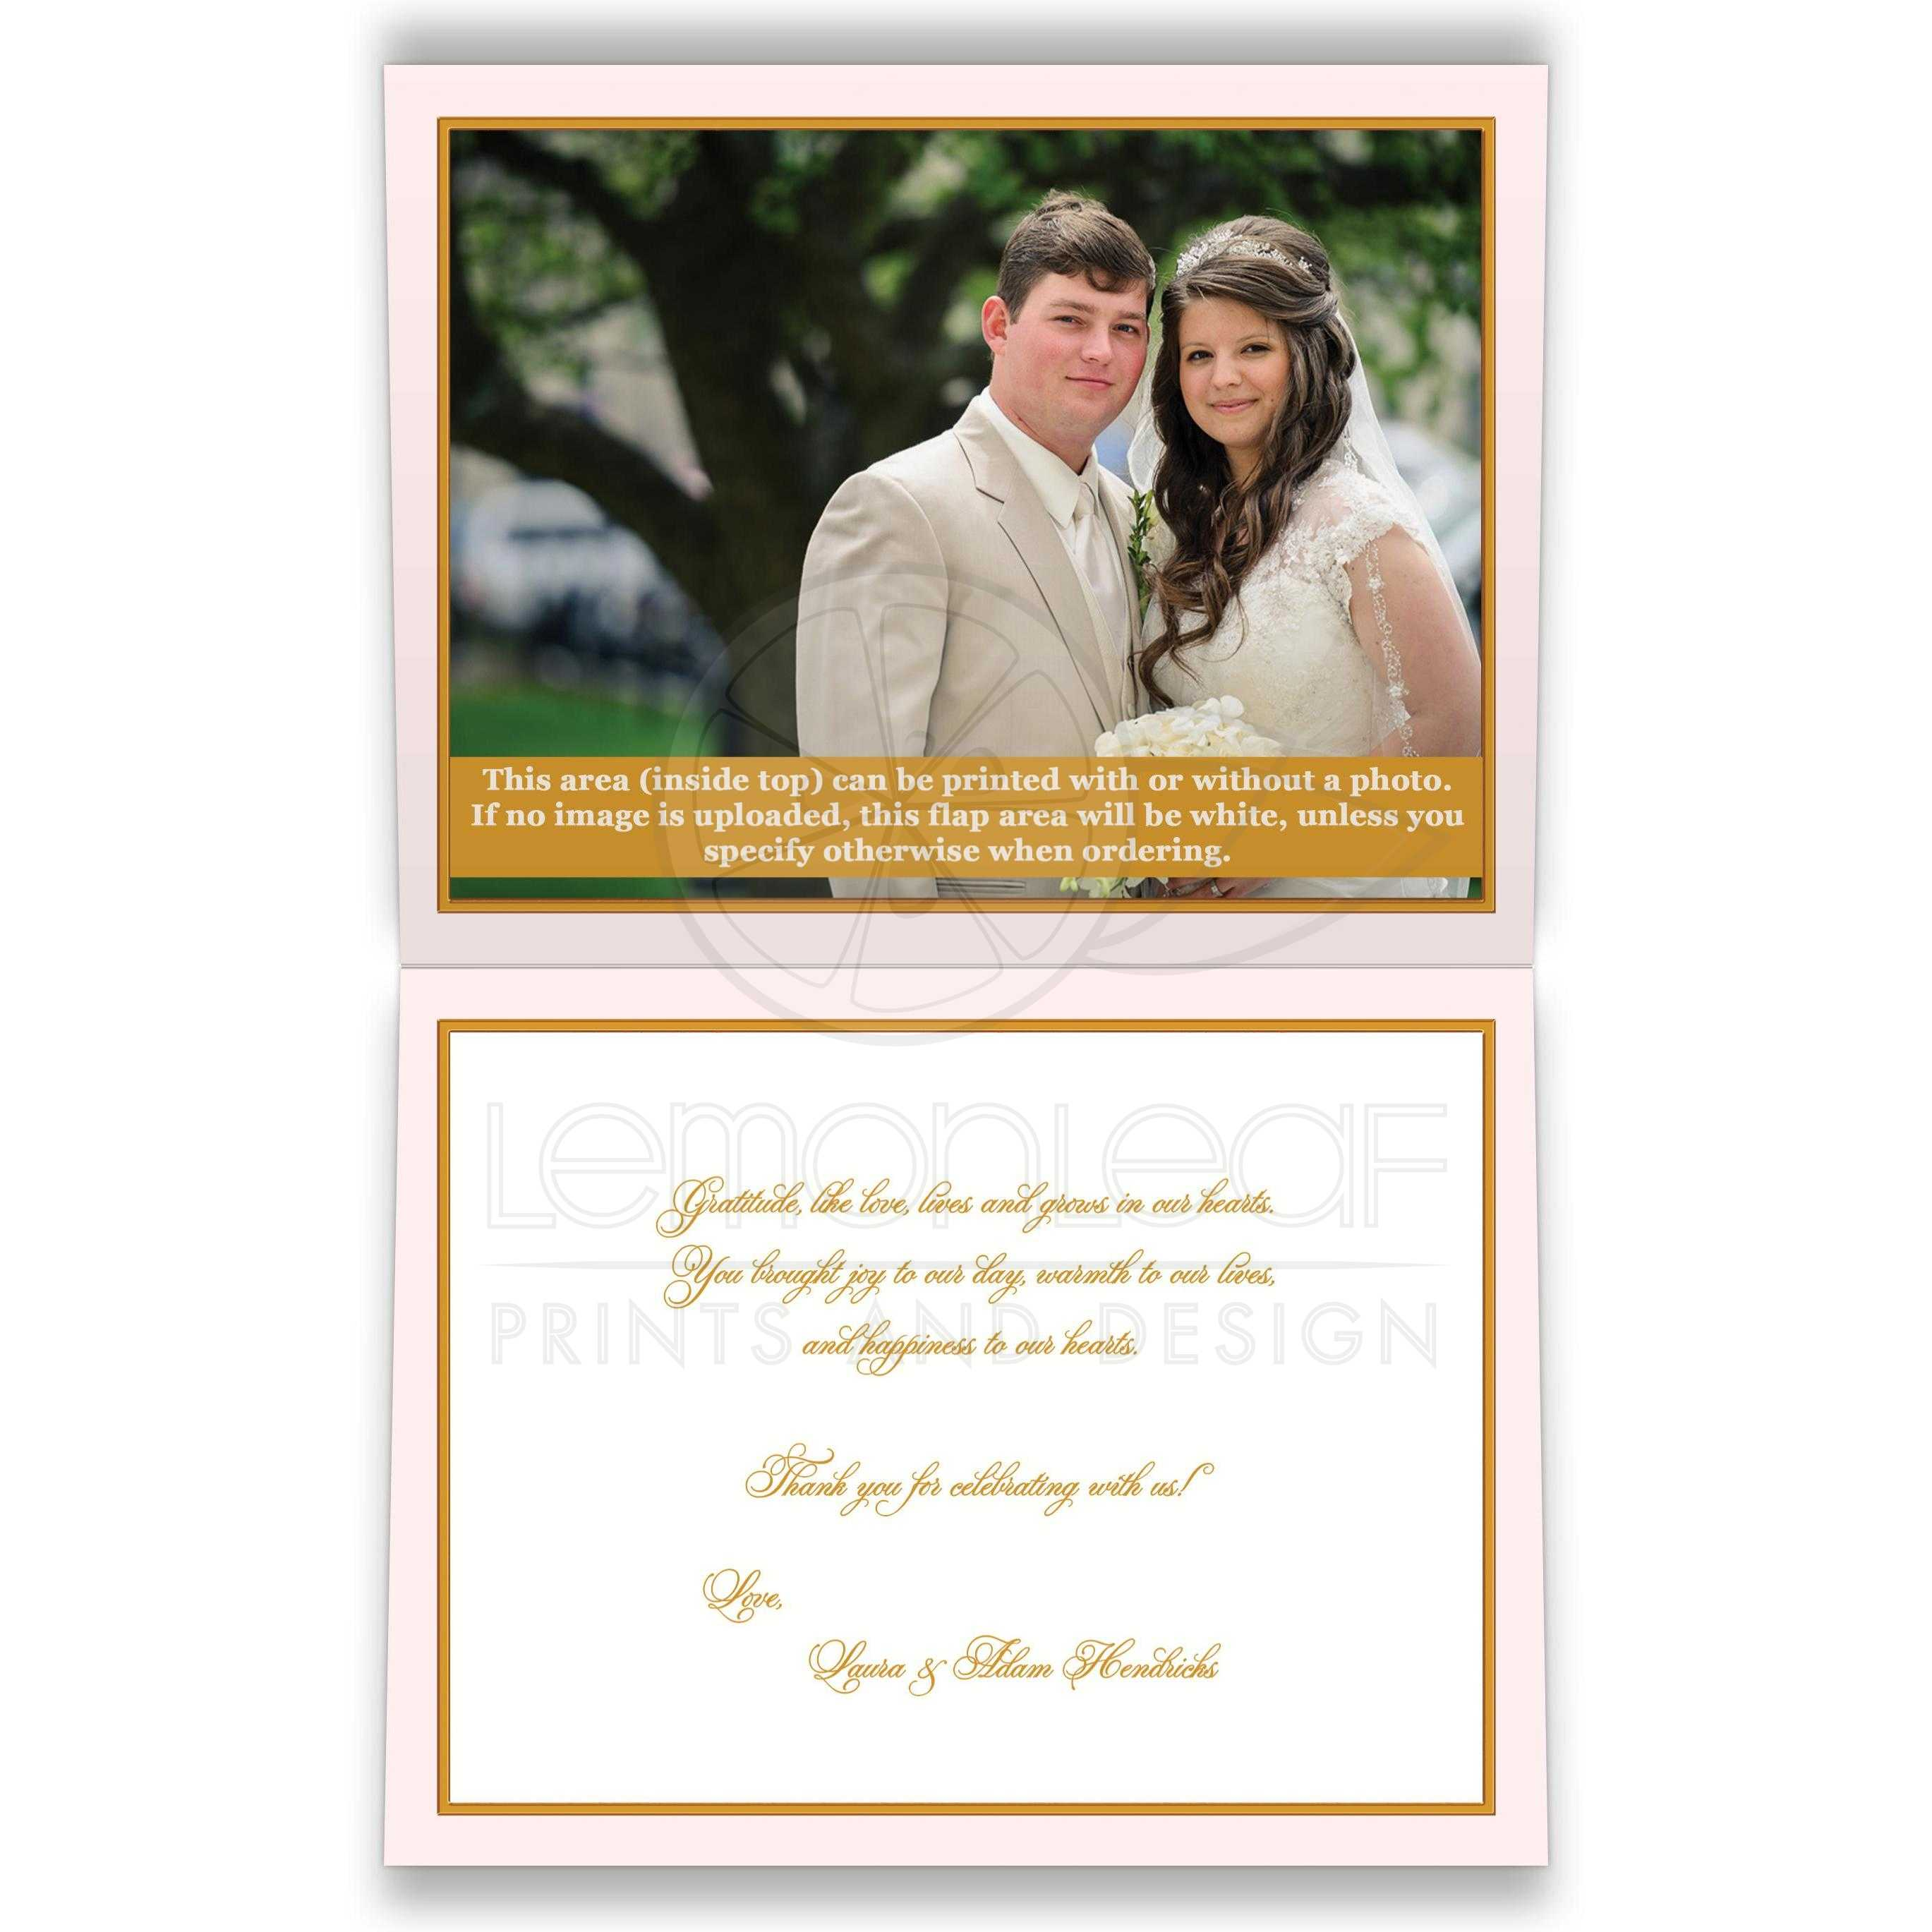 personalized blush pink ivory and gold vintage floral wedding thank you card with monogram - Wedding Thank You Cards